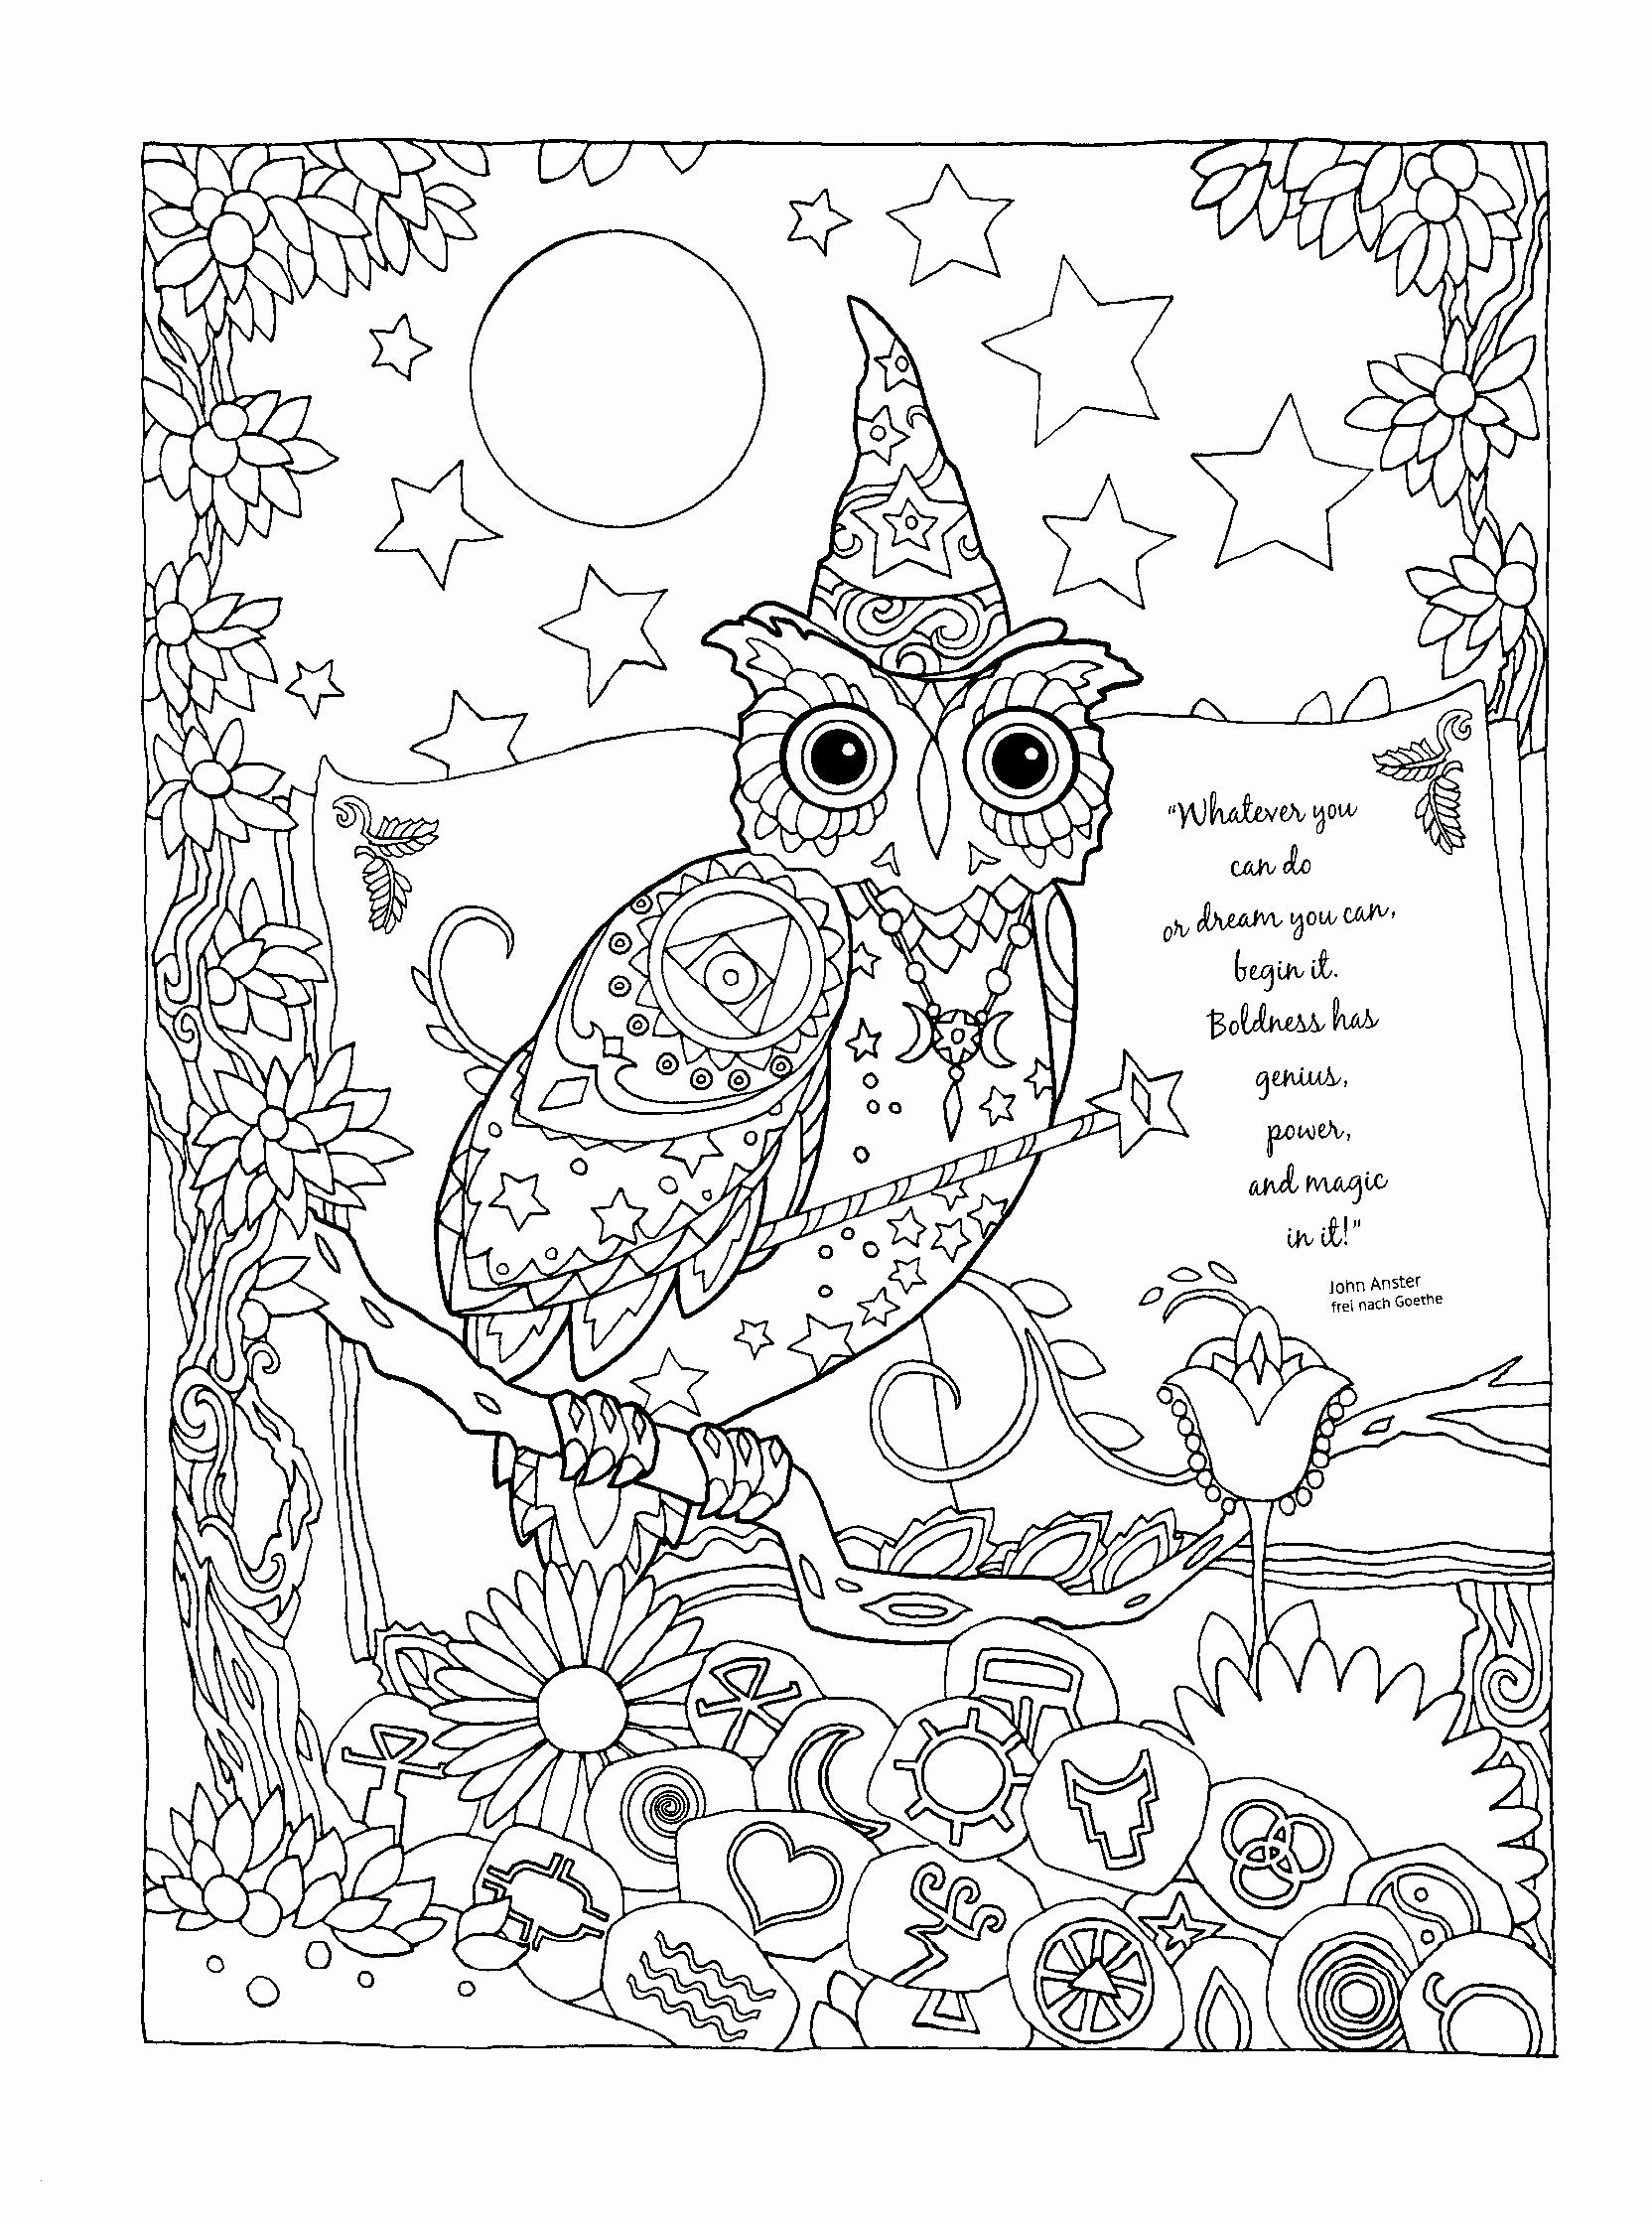 bird-coloring-page-of-bird-coloring-page Bird Coloring Page Animal